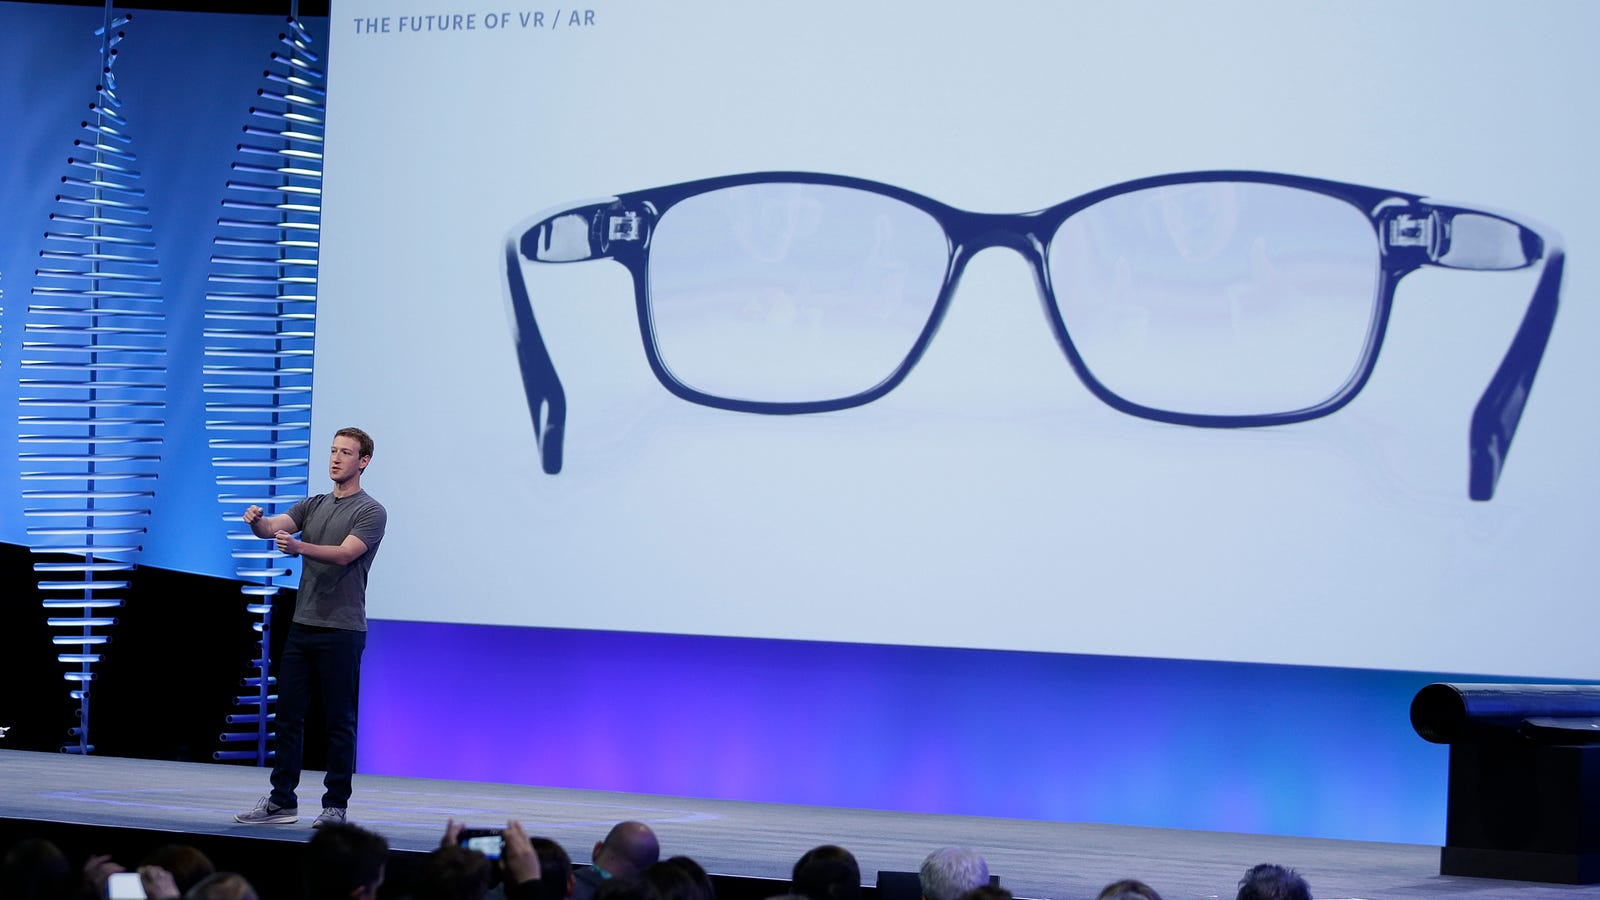 Facebook's AR Glasses May Be Getting Closer to Becoming a Reality